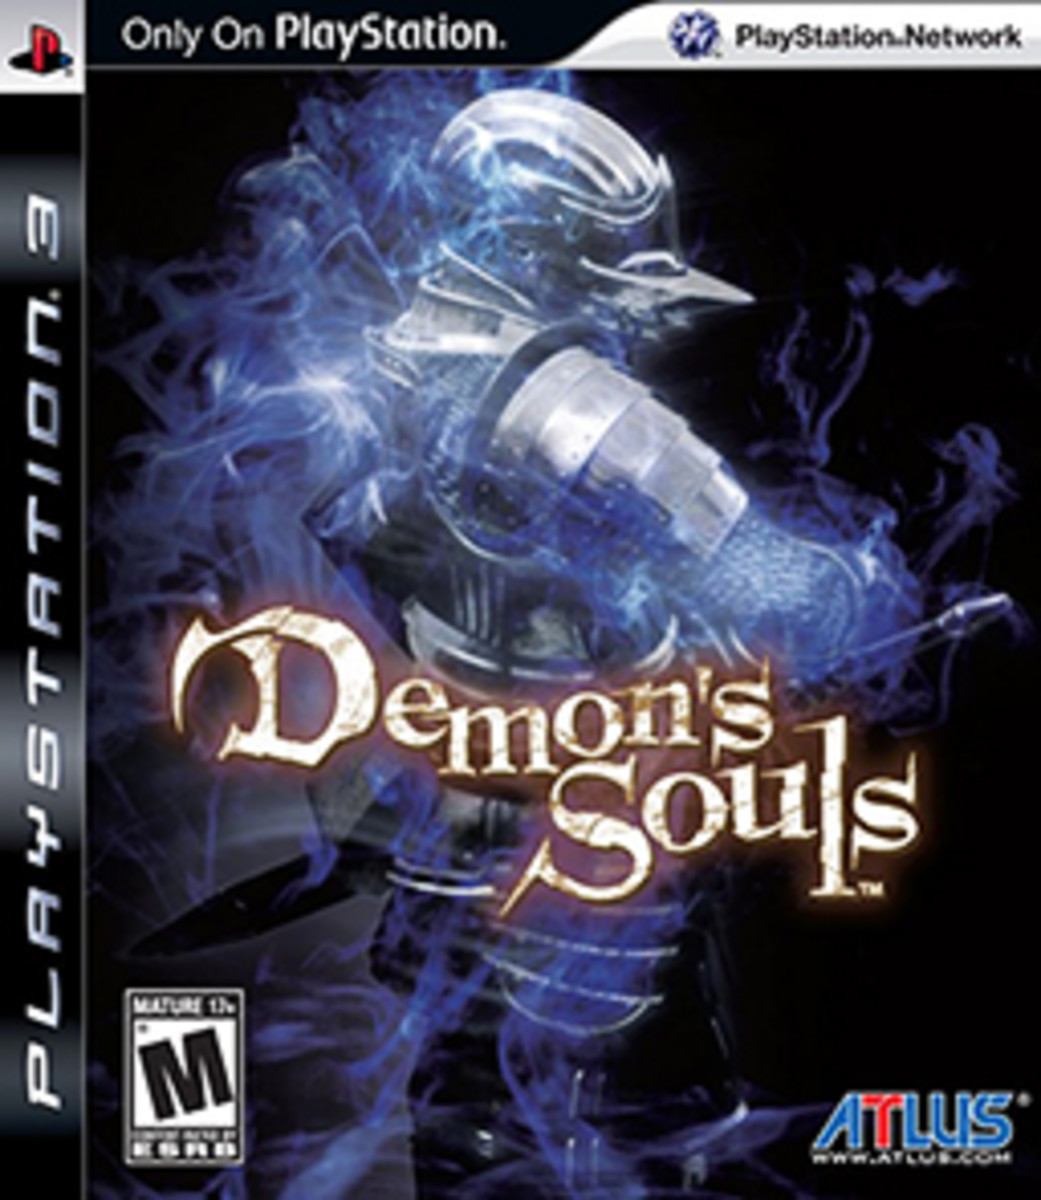 This is the cover art for Demon's Souls. The cover art copyright is believed to belong to From Software and ATLUS.